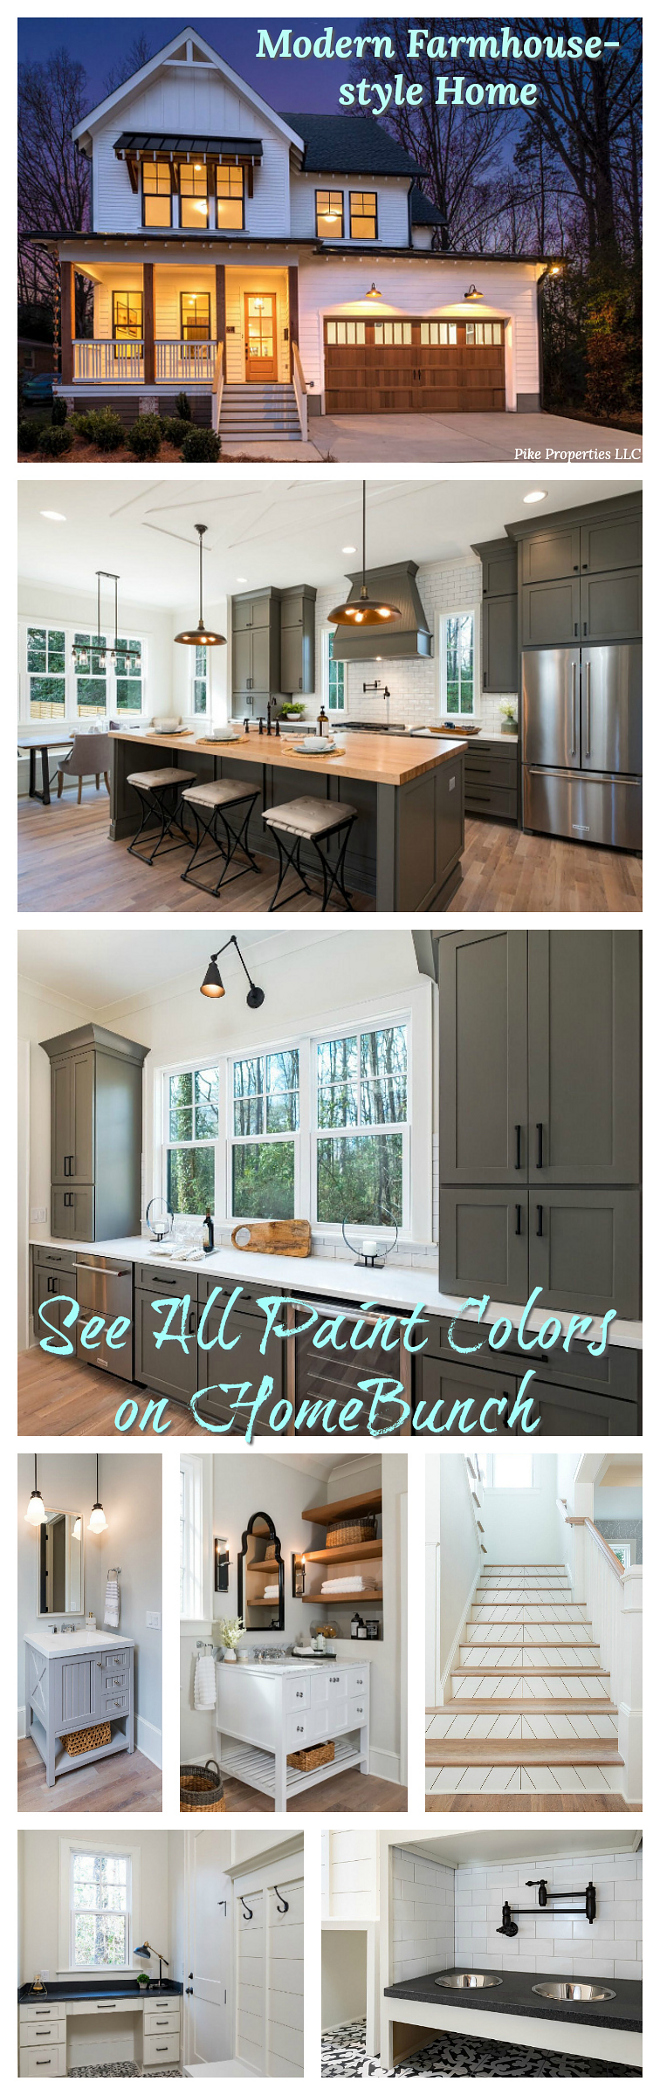 Interior Design Ideas Modern Farmhouse-style Home see paint colors on Home Bunch #InteriorDesignIdeas #ModernFarmhousestyle #ModernFarmhousestyleHome